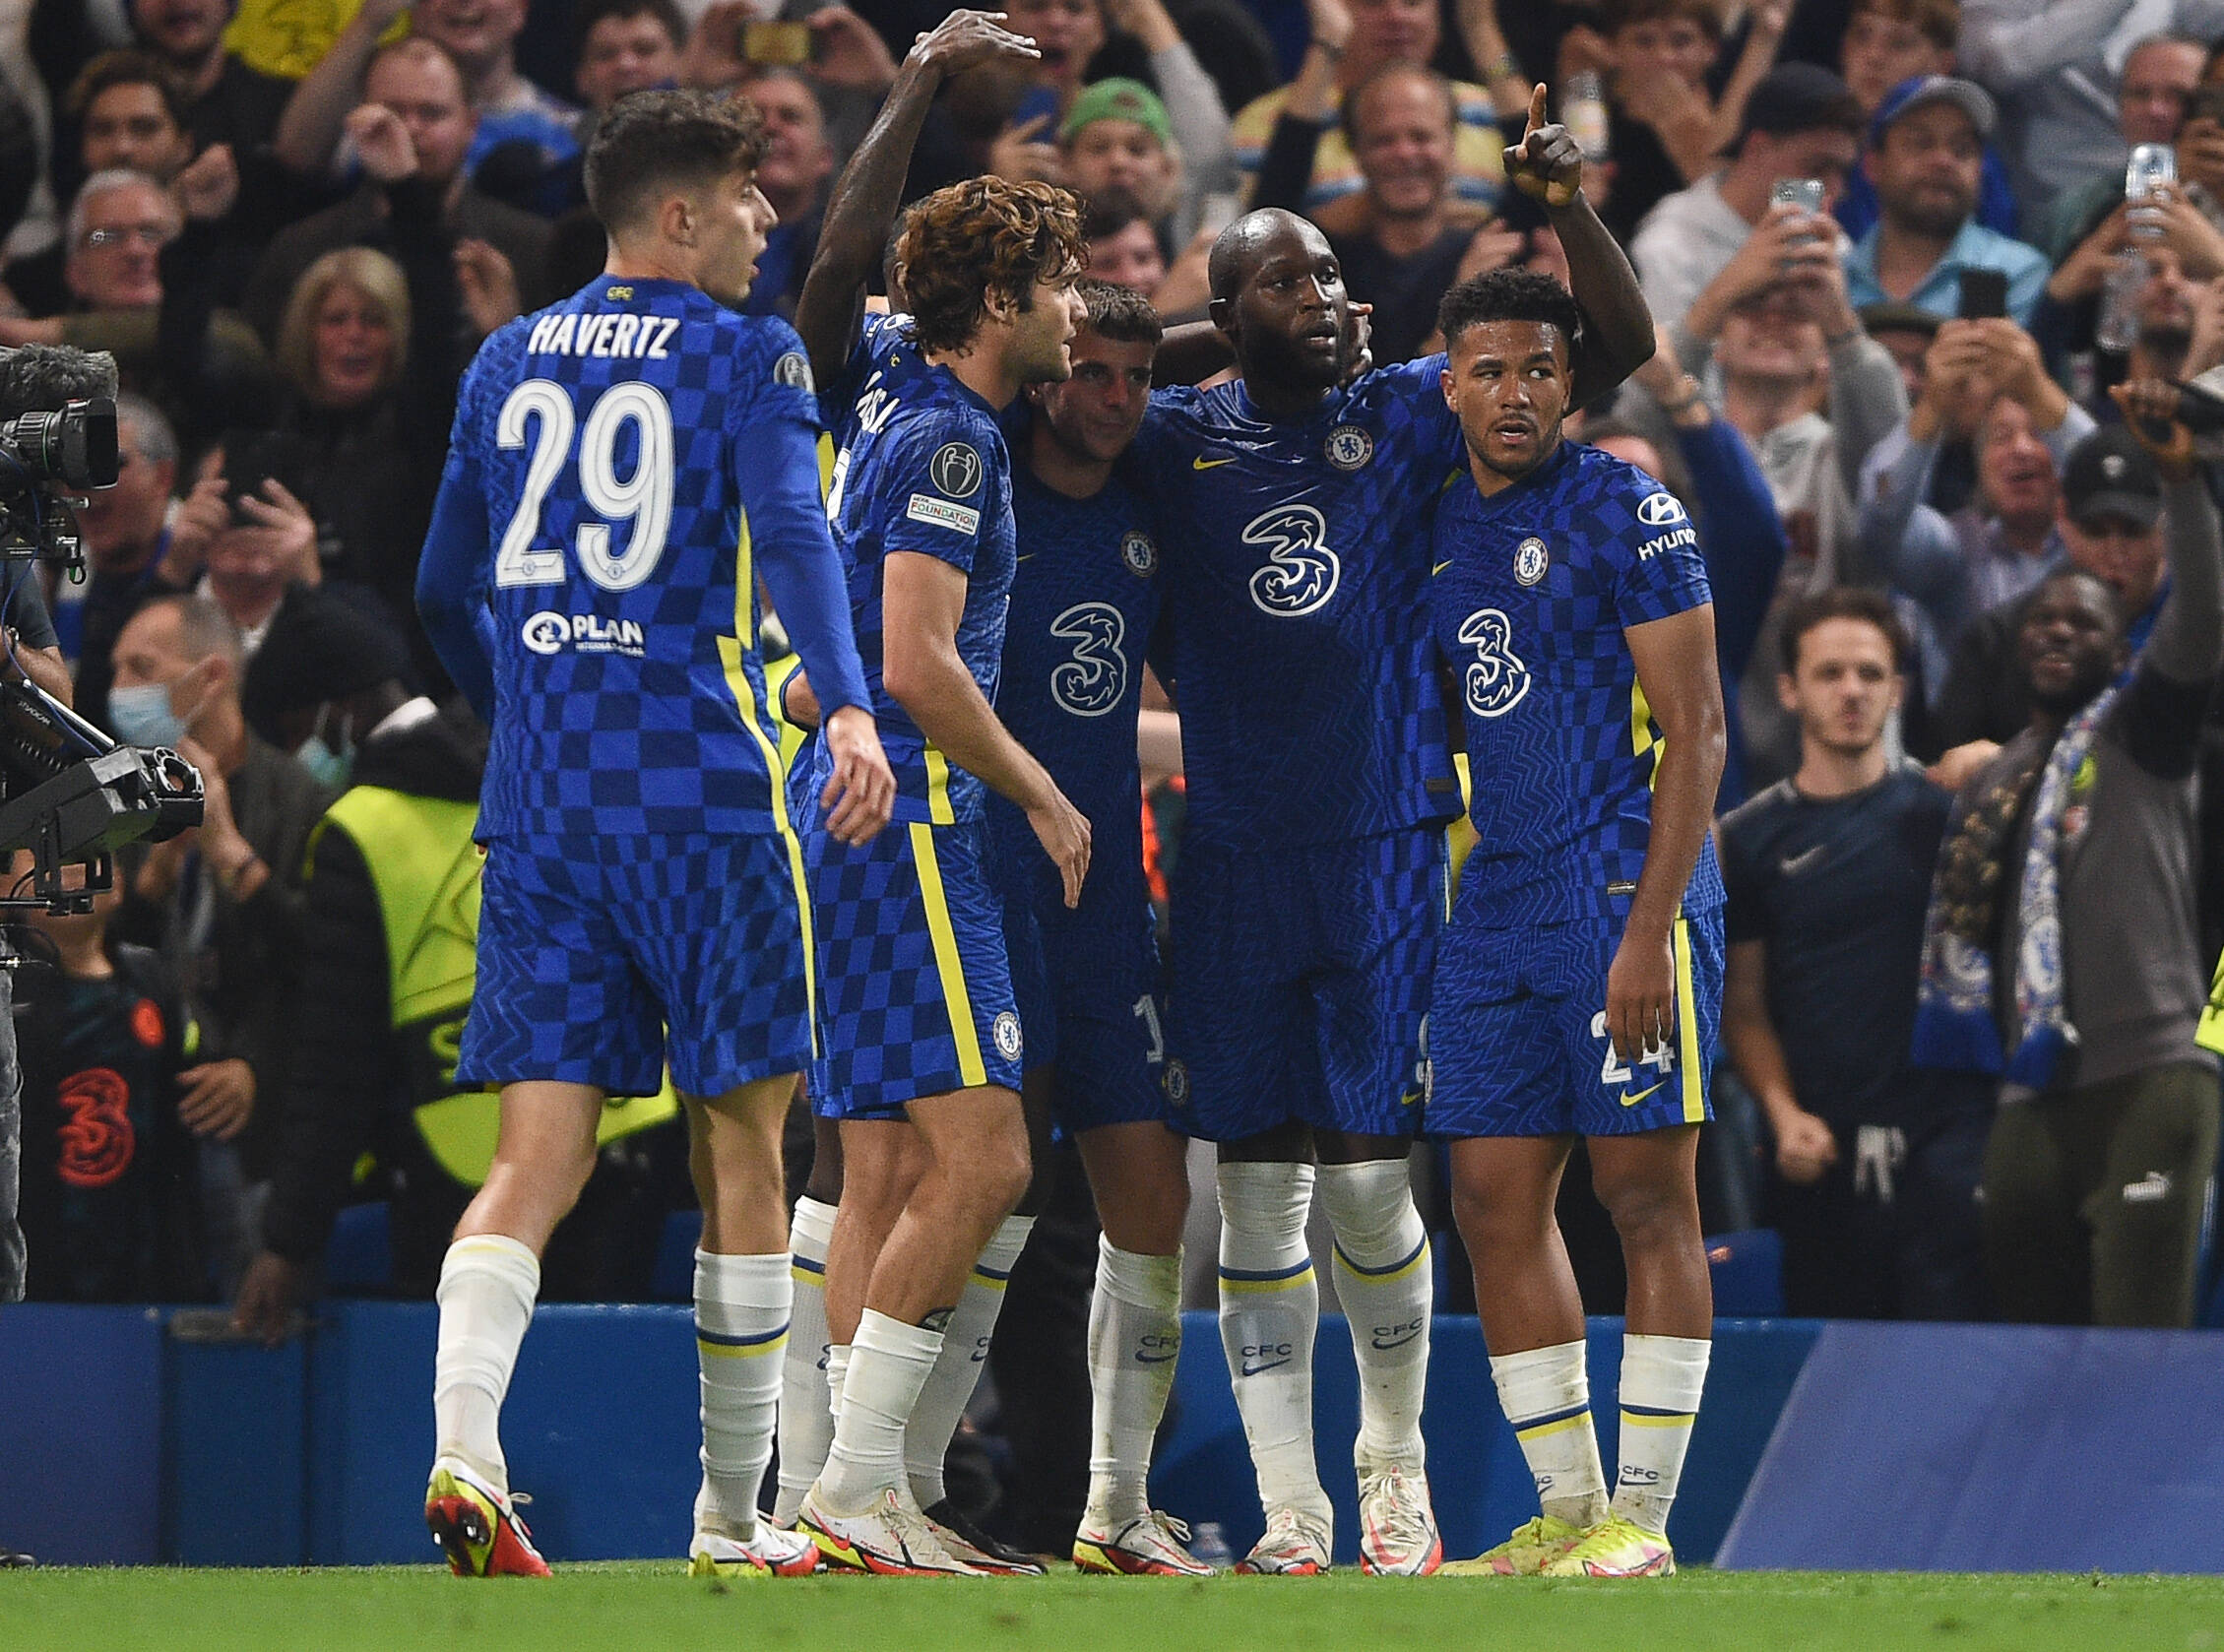 3-4-2-1 Chelsea Predicted Lineup Vs Aston Villa (Chelsea players are celebrating in the picture)